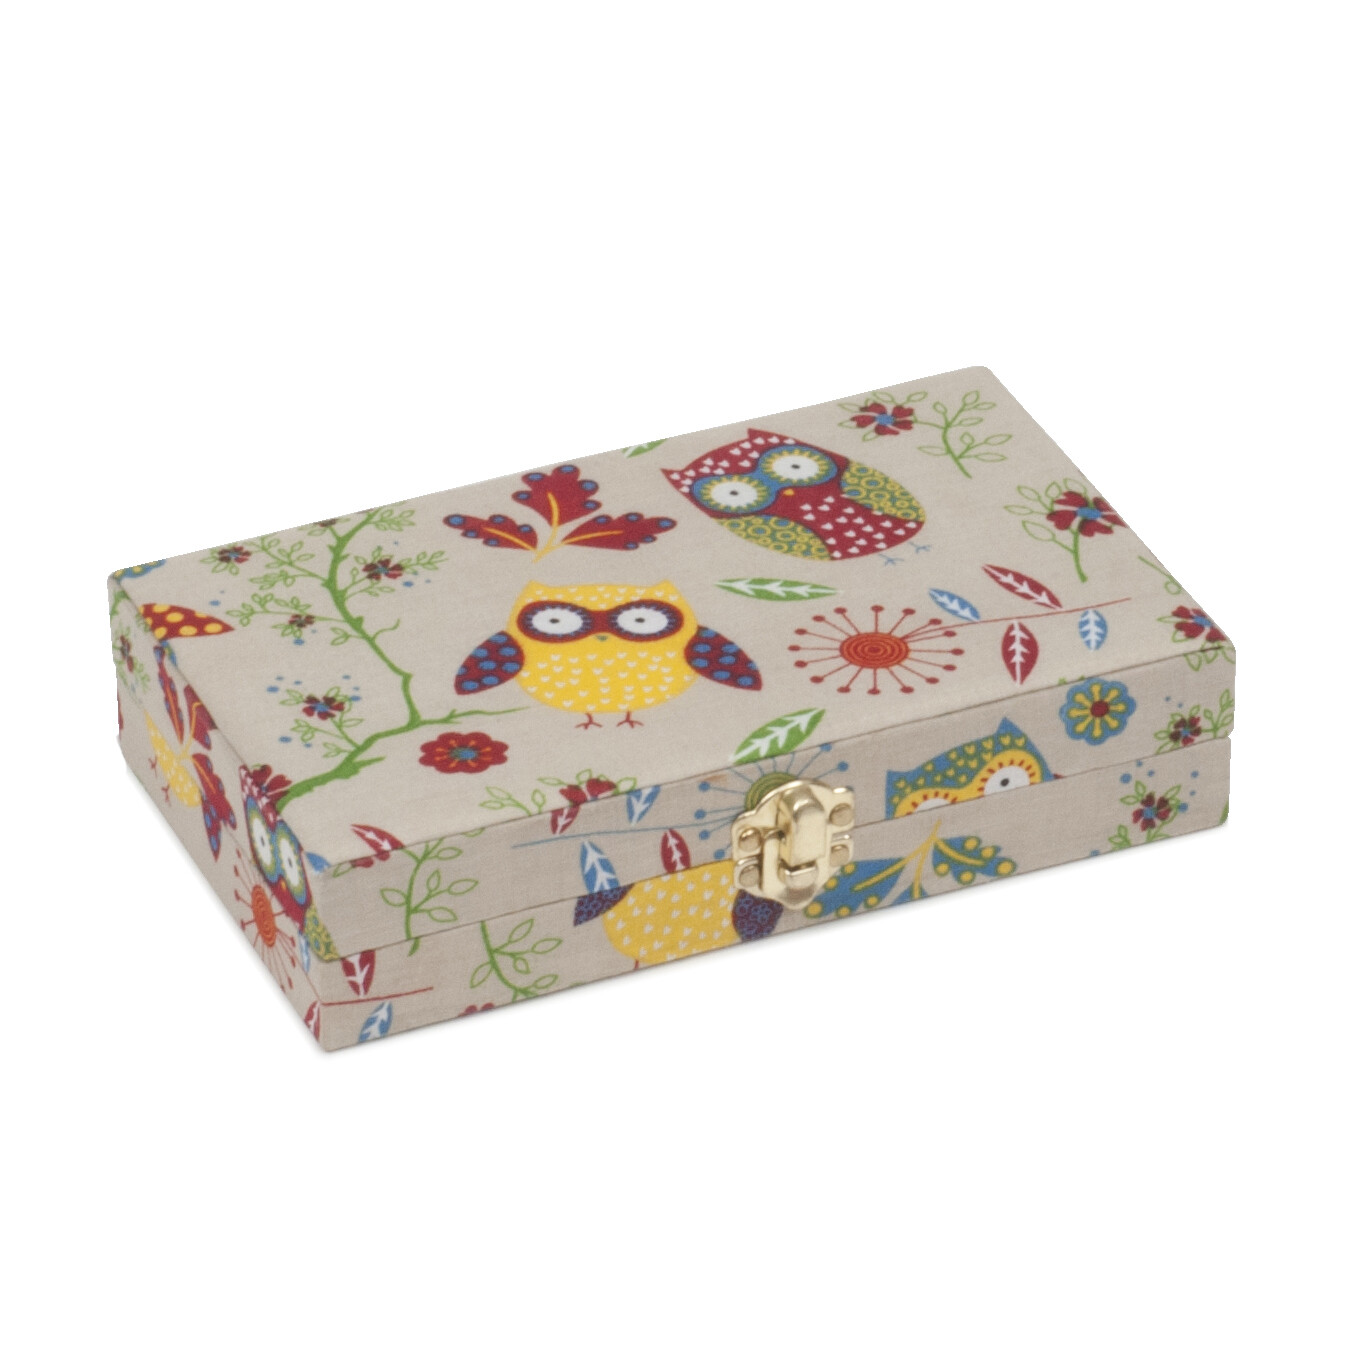 Bobbin Storage Box - Owl